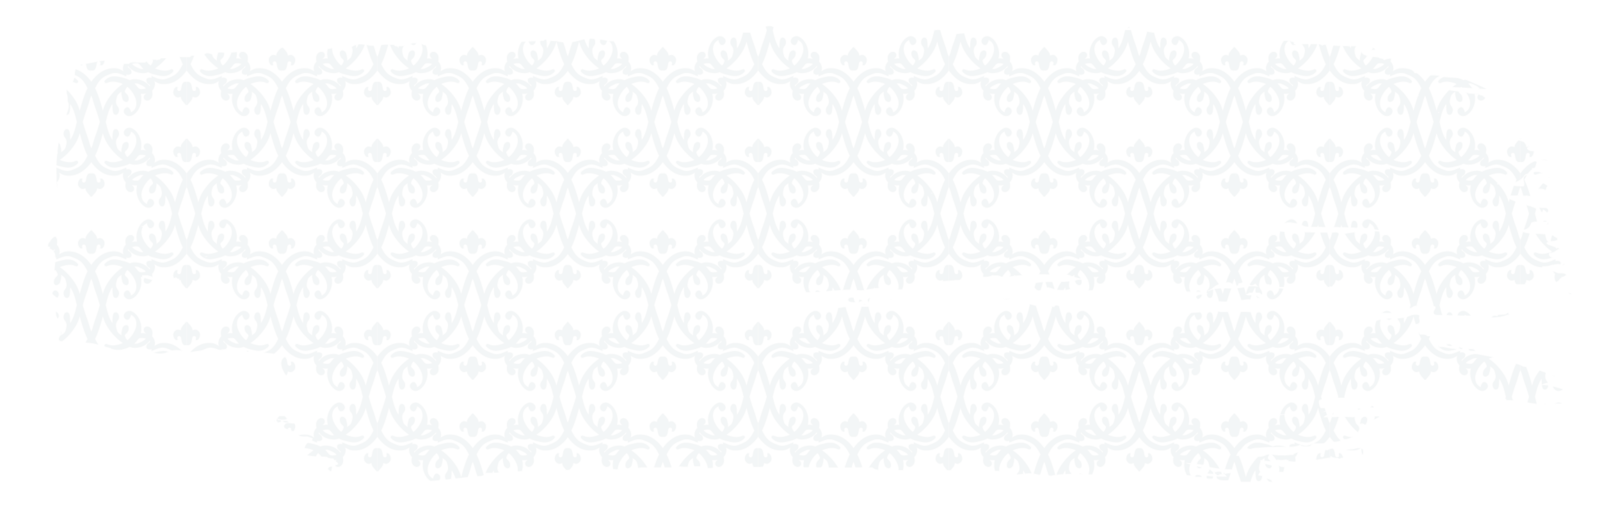 JVP-001_PATTERN-ELEMENT-01